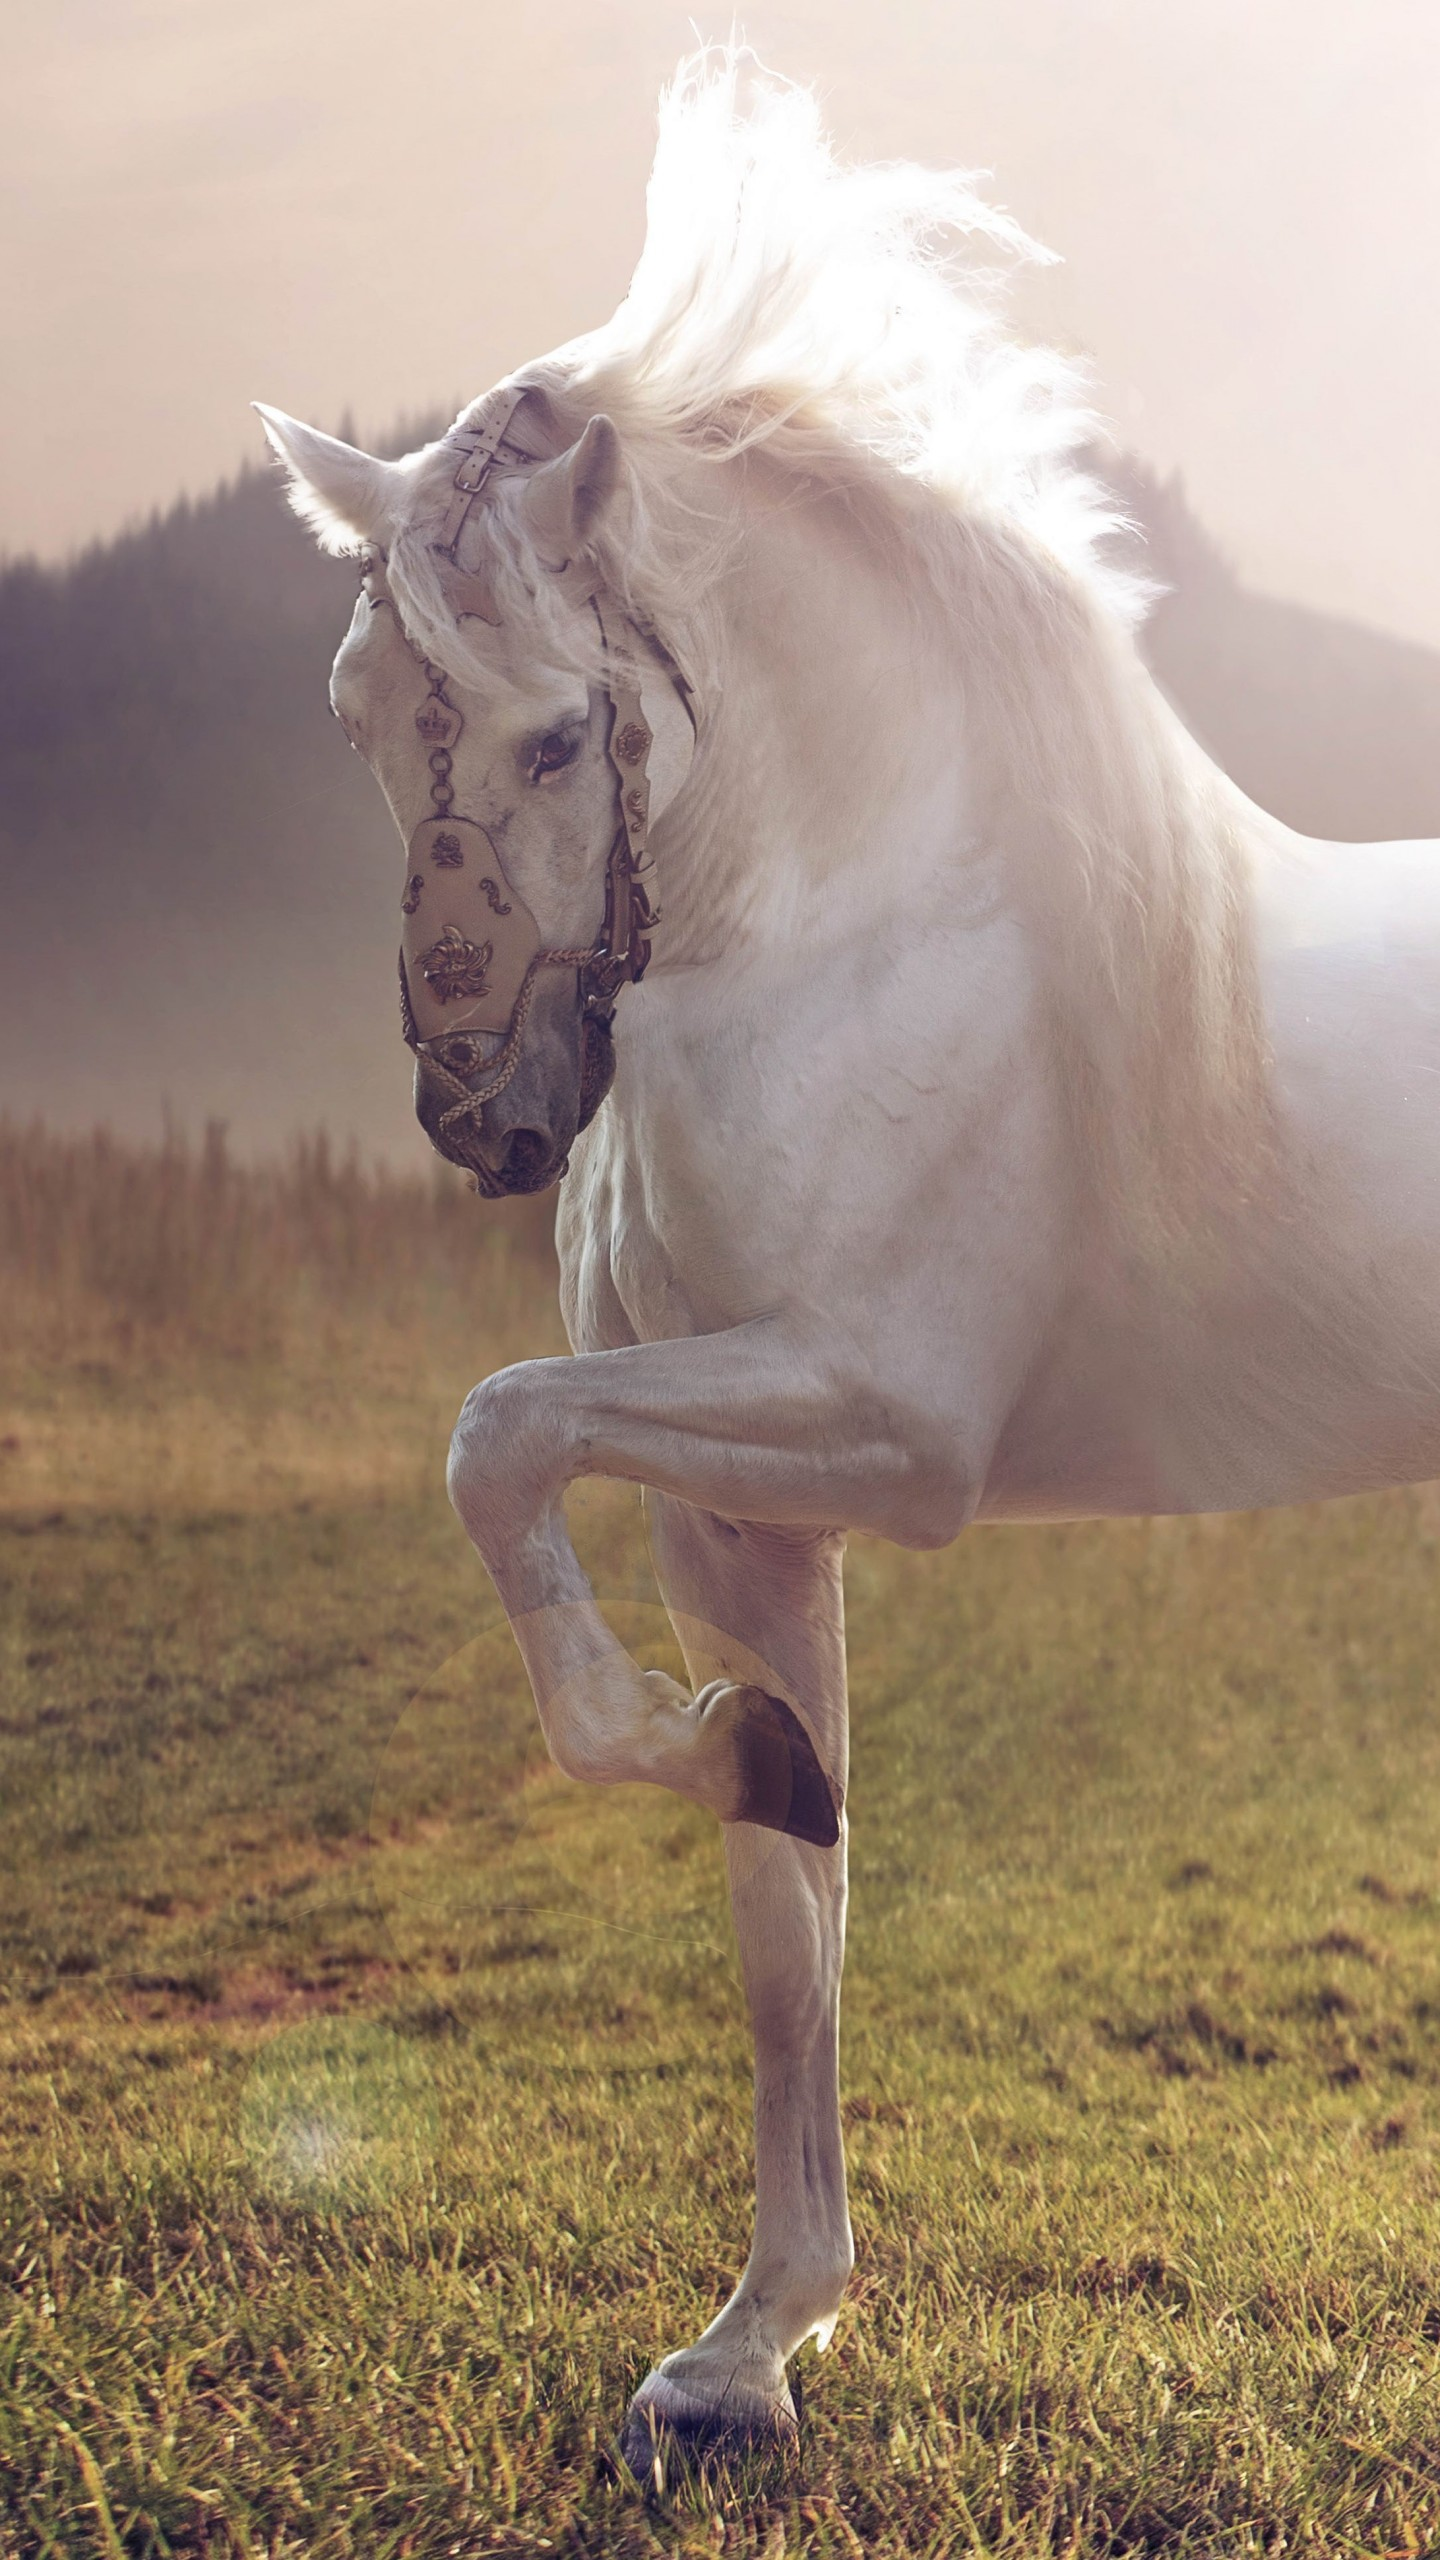 Cute Wallpapers Quotes For Girls Wallpaper Horse Cute Animals Sunset Animals 4538